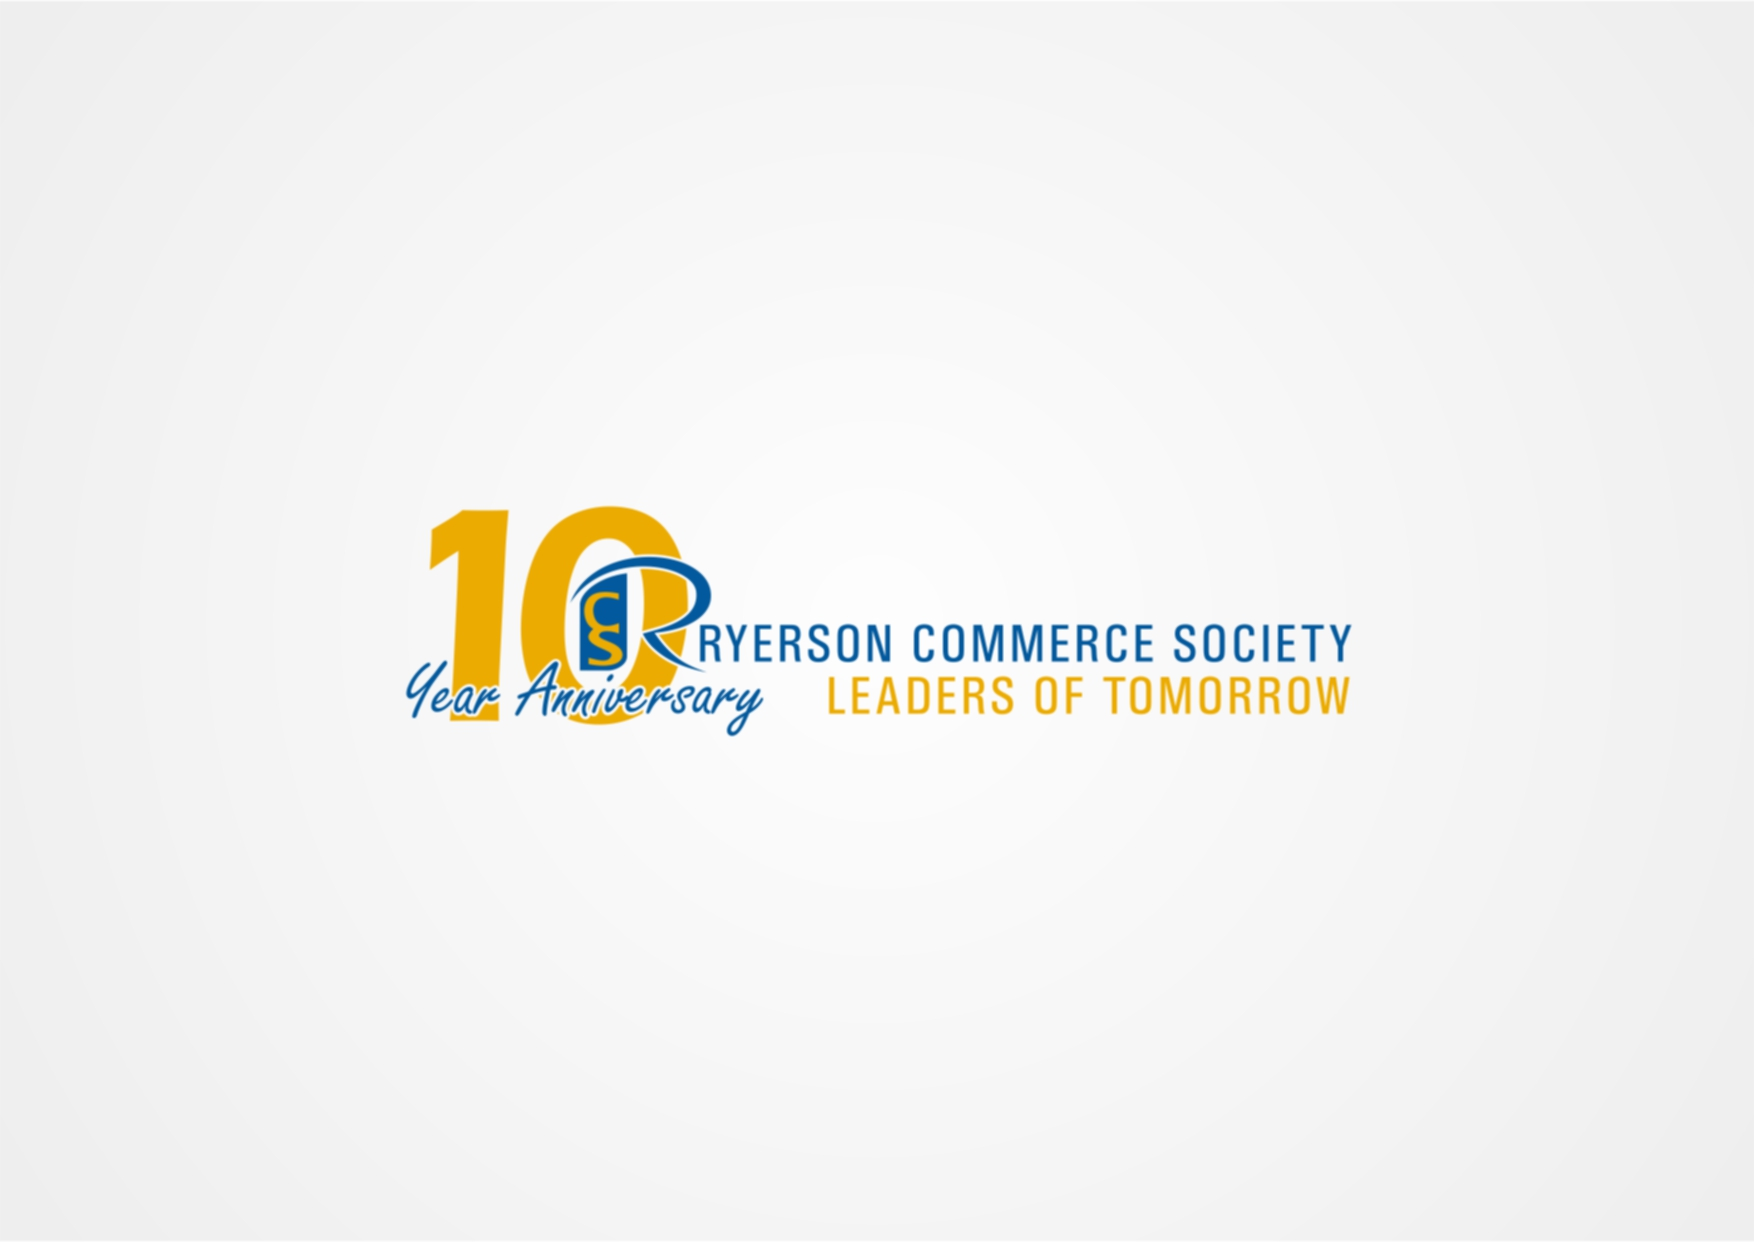 Logo Design by Private User - Entry No. 4 in the Logo Design Contest 10 Year Anniversary Logo Design for the Ryerson Commerce Society.